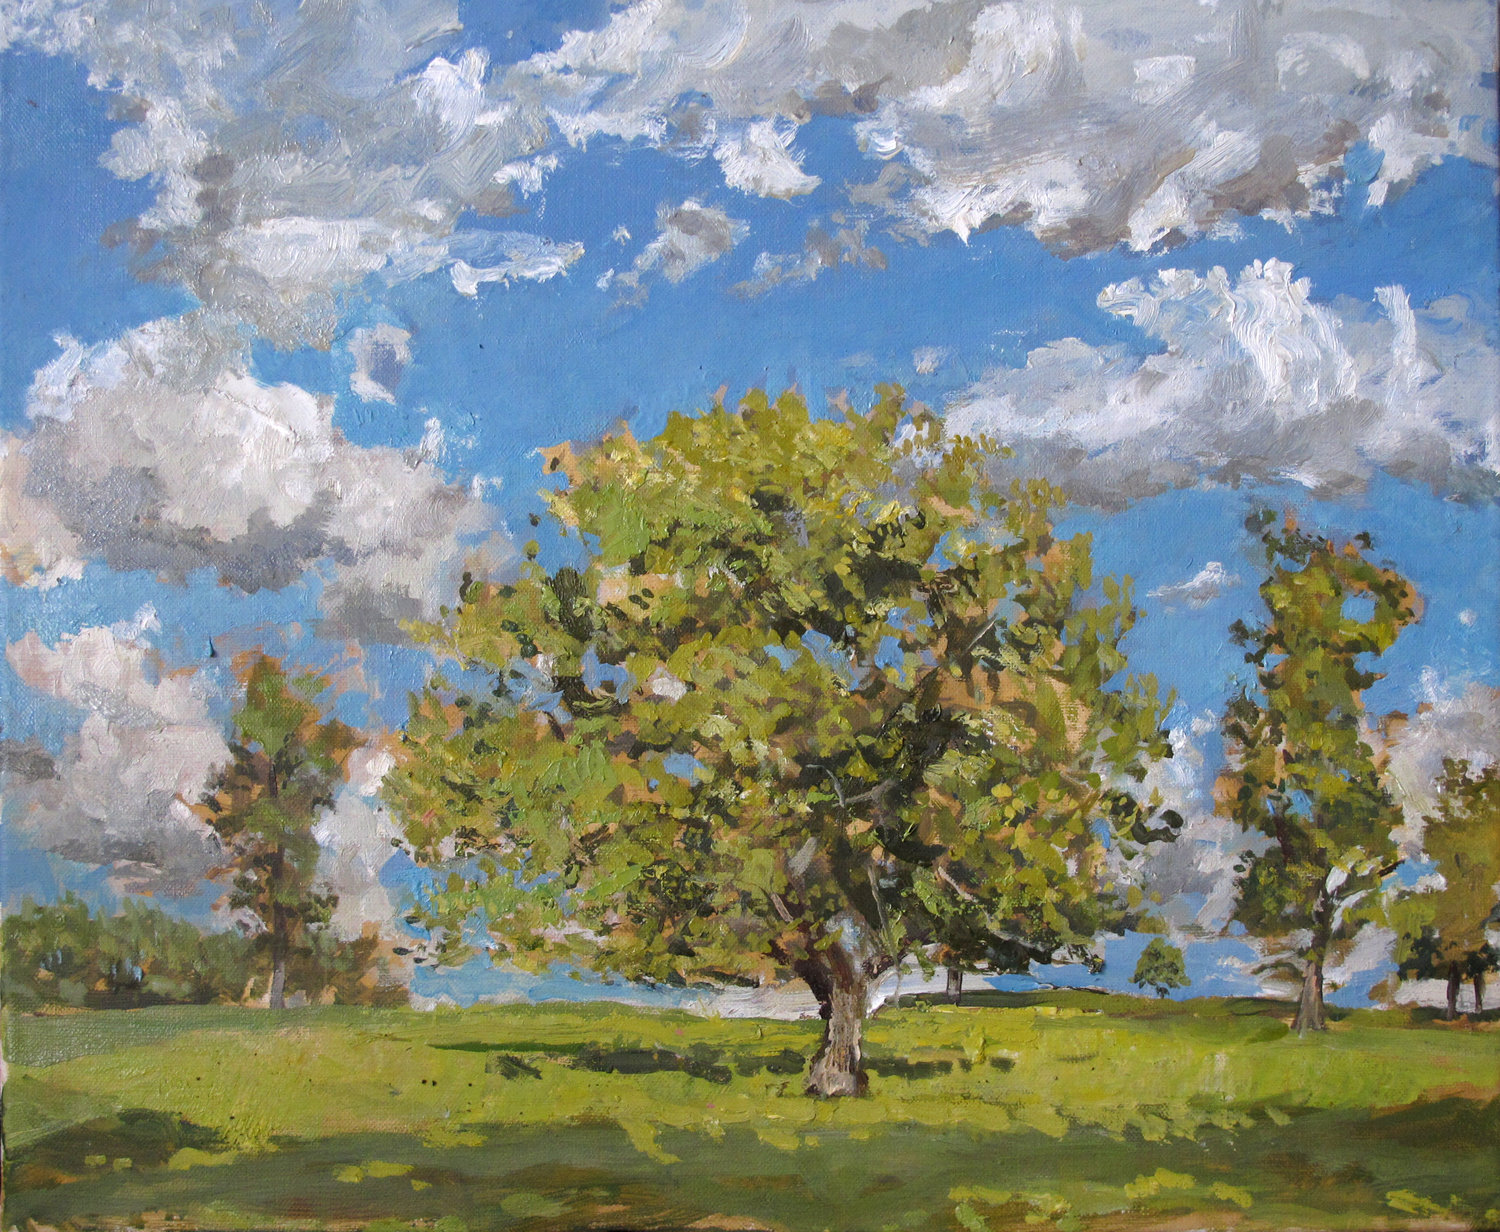 Oak Tree in June Light - Lowther ( Oil on Linen ) 38 x 45 cm